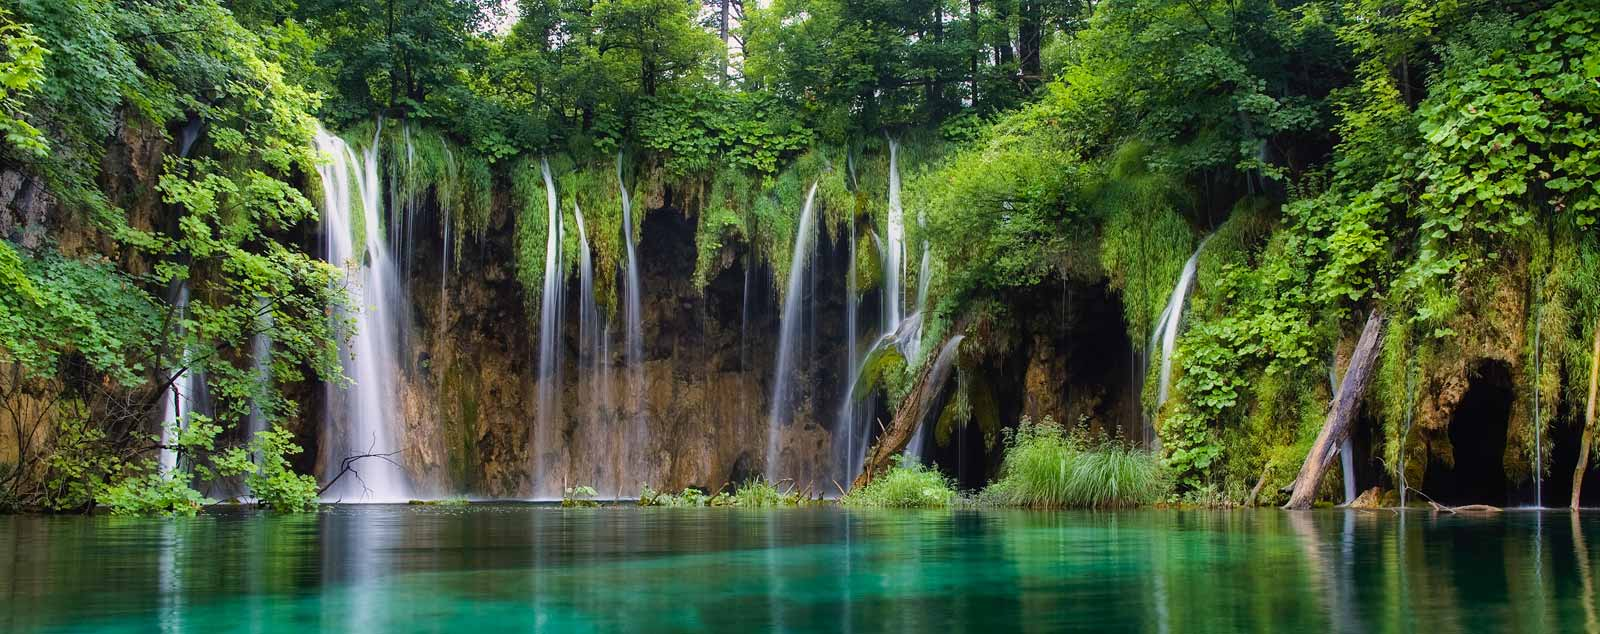 Waterfalls cascade down through greenery and into a still pool